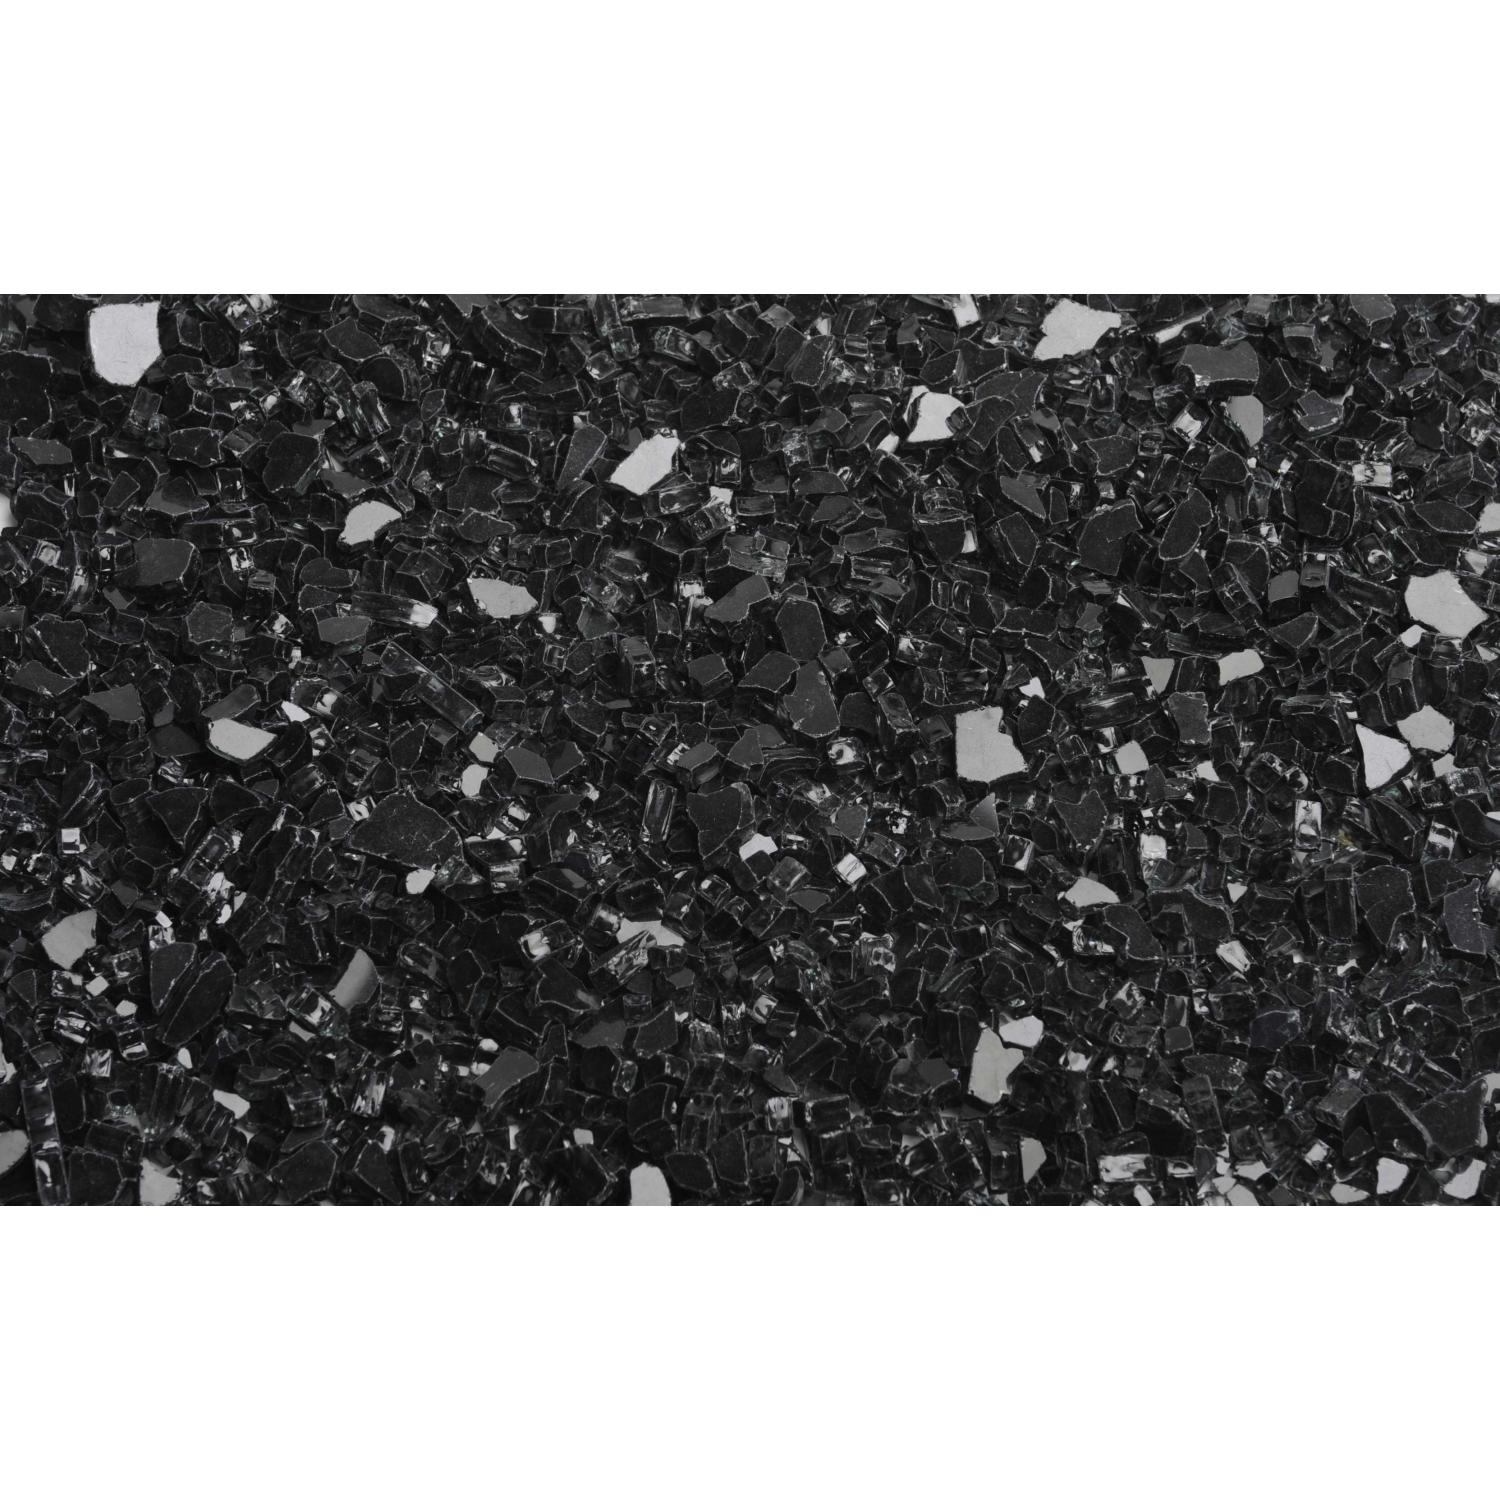 American Fireglass 1/2 Inch Black Fire Glass - 1 Lb